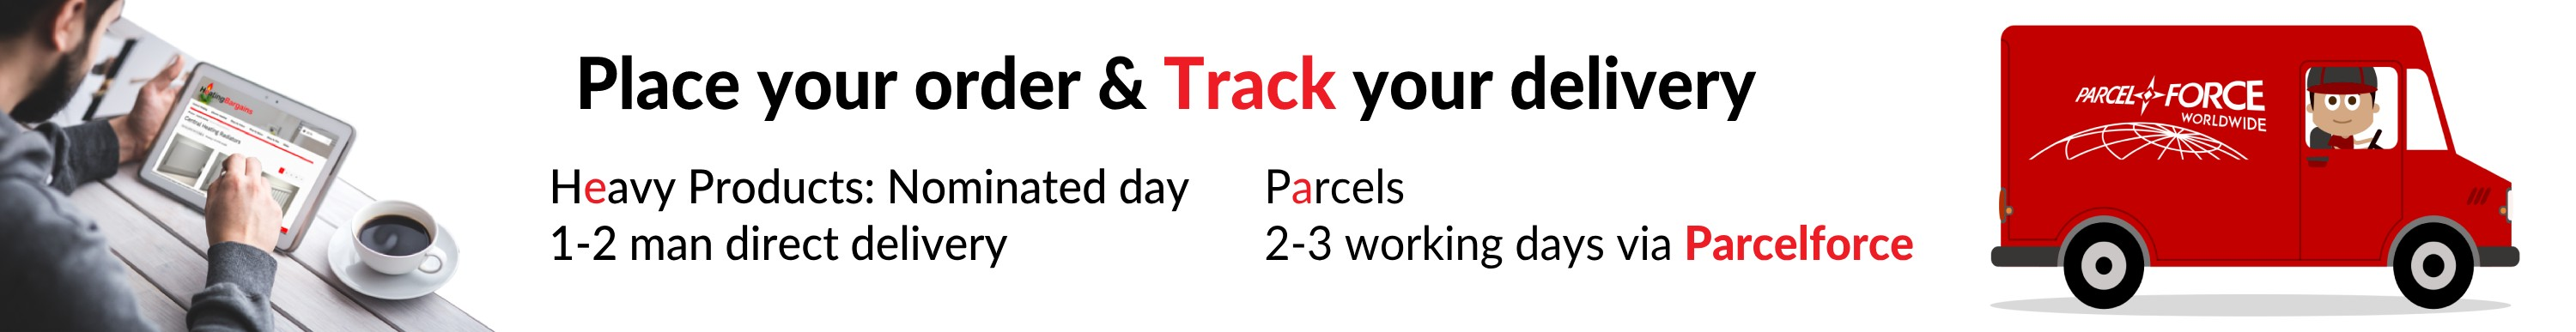 Deliveries by parcelforce